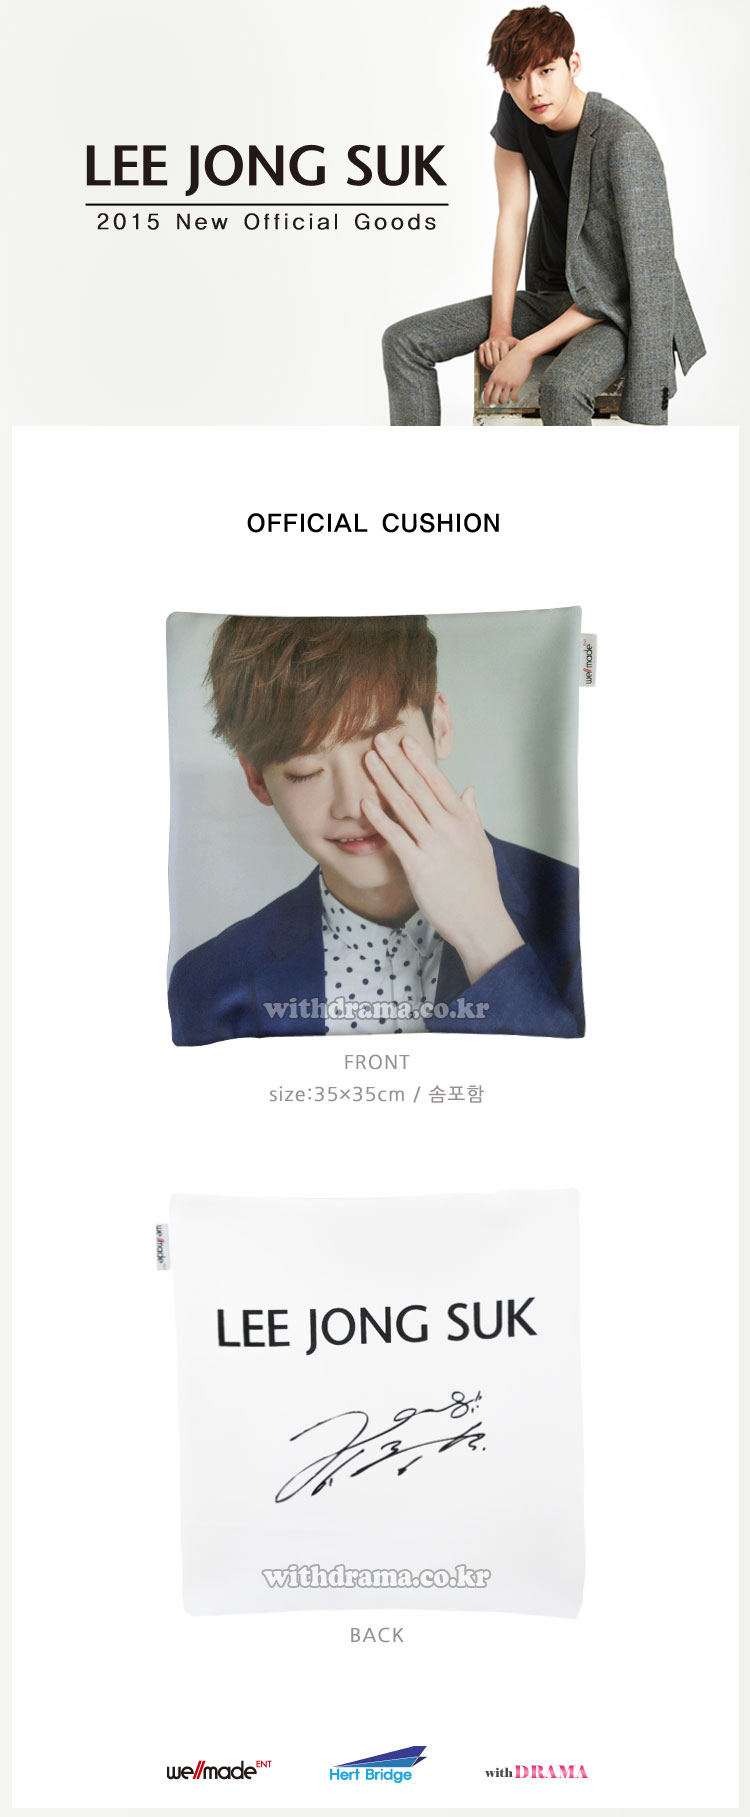 [LEE JONG SUK] Official Cushion